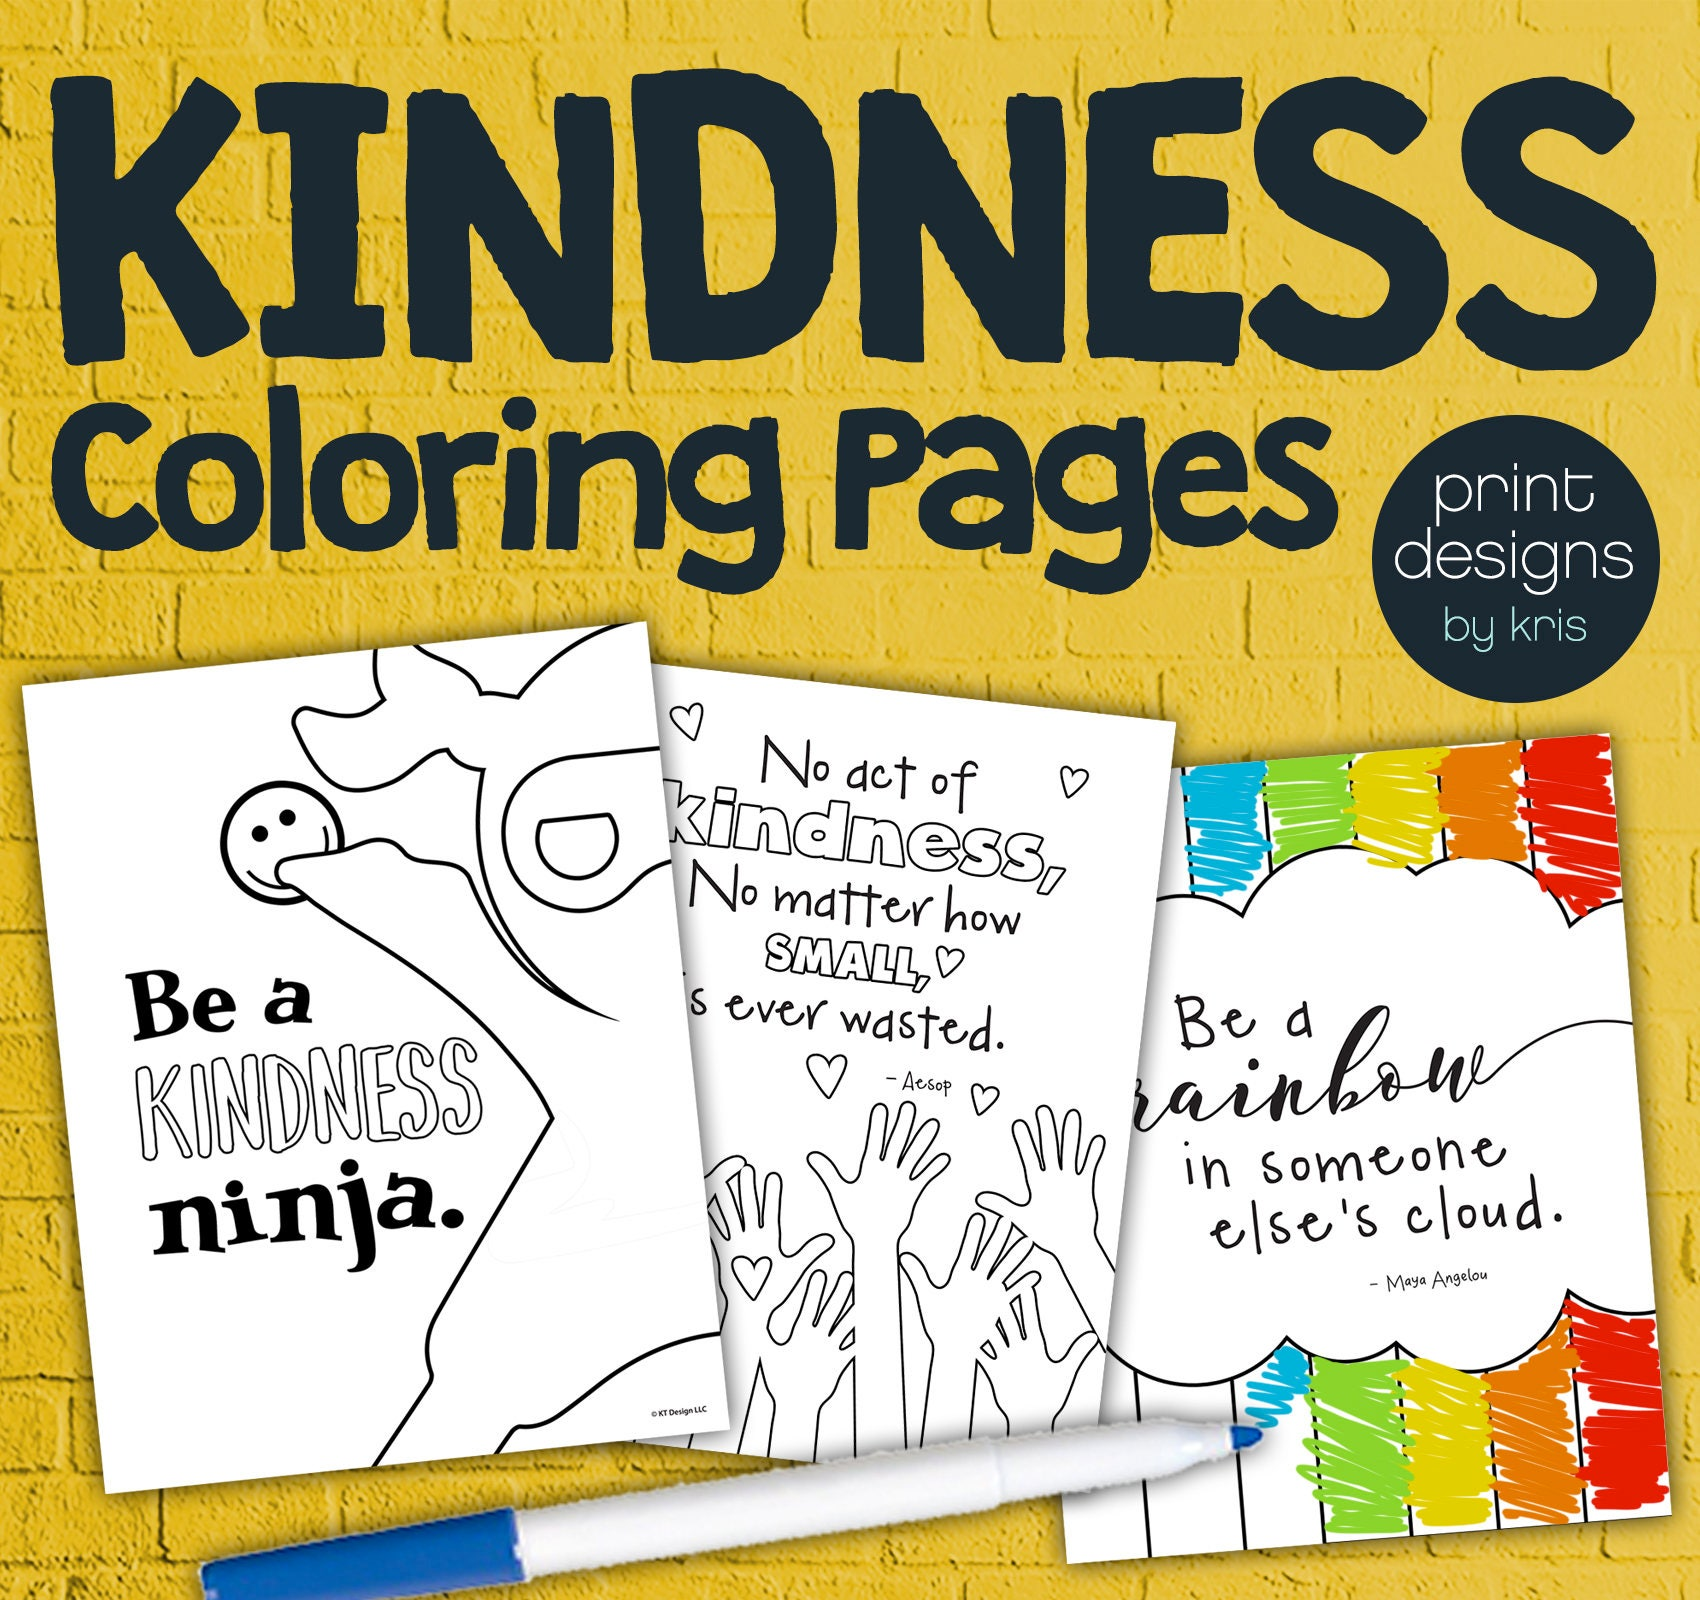 Kindness Coloring Pages Teaching Kindness Coloring Pages | Etsy